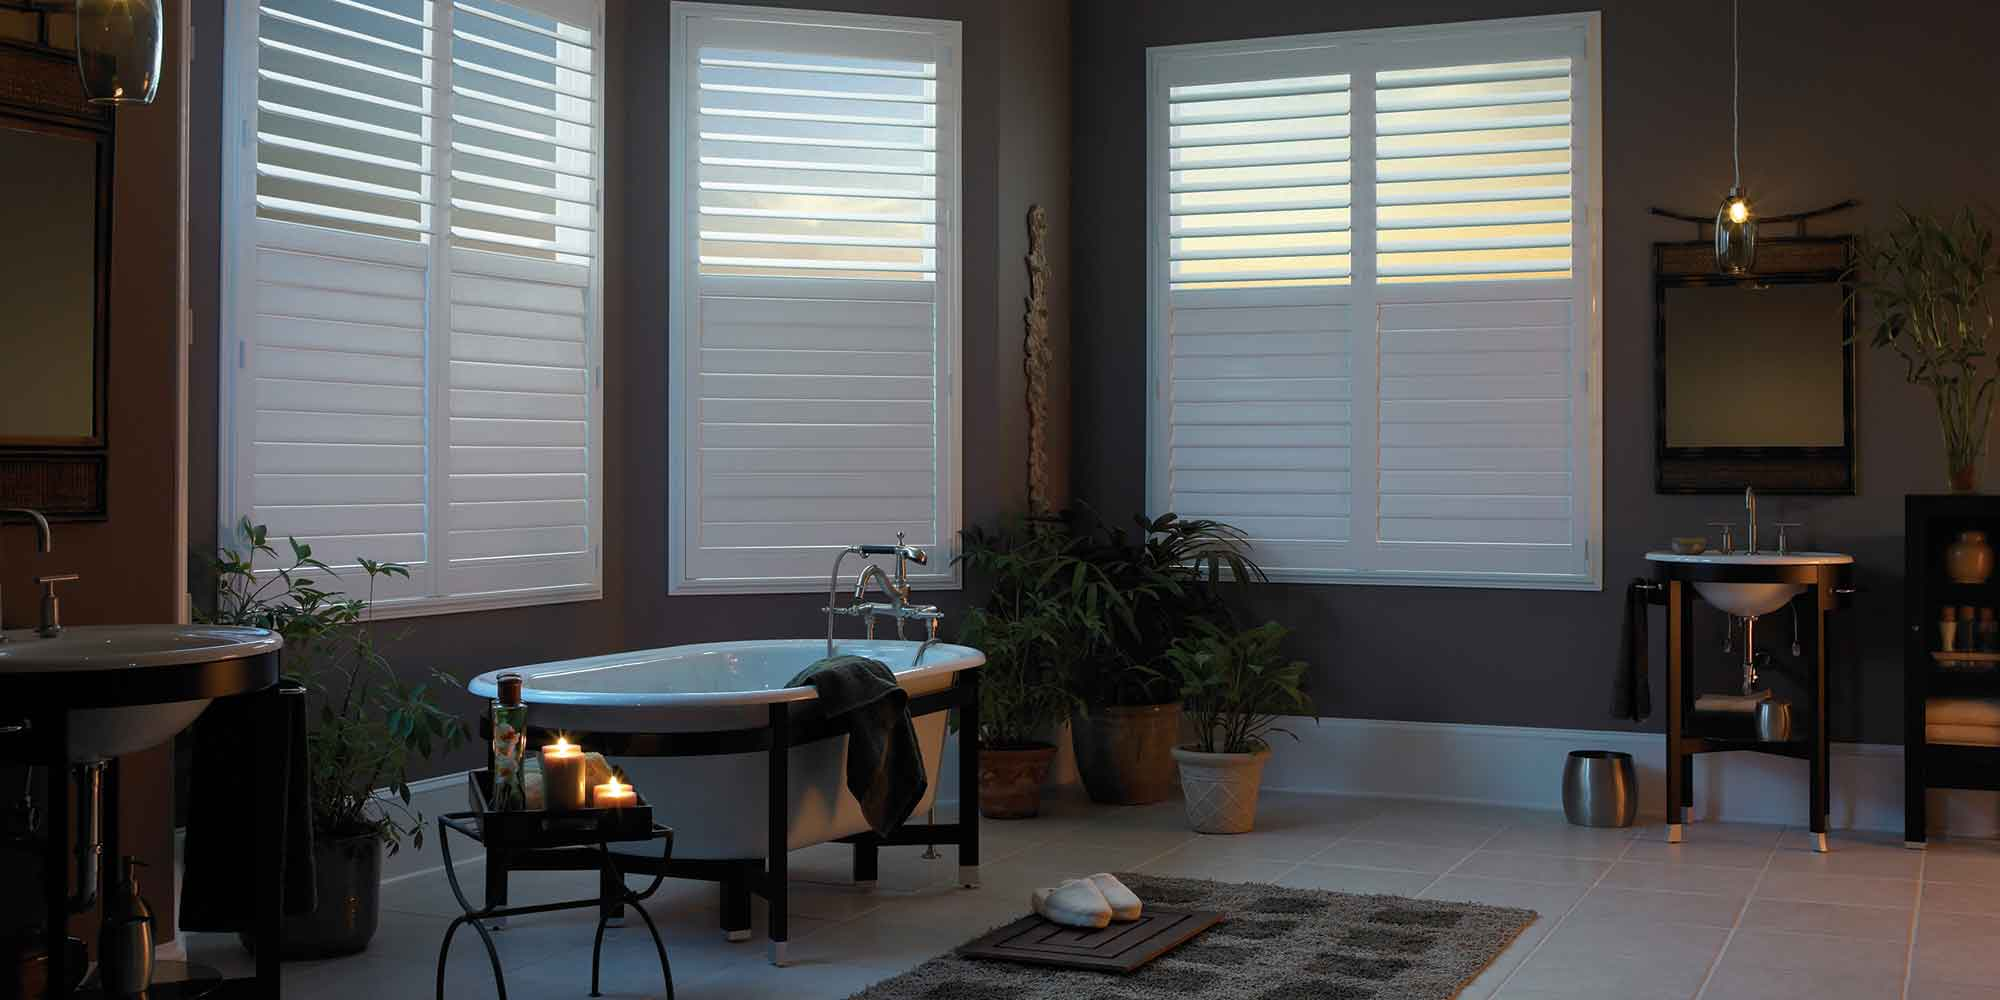 county and orange best near oc stores blindshutter blind blinds me hg register shutter shutters store of